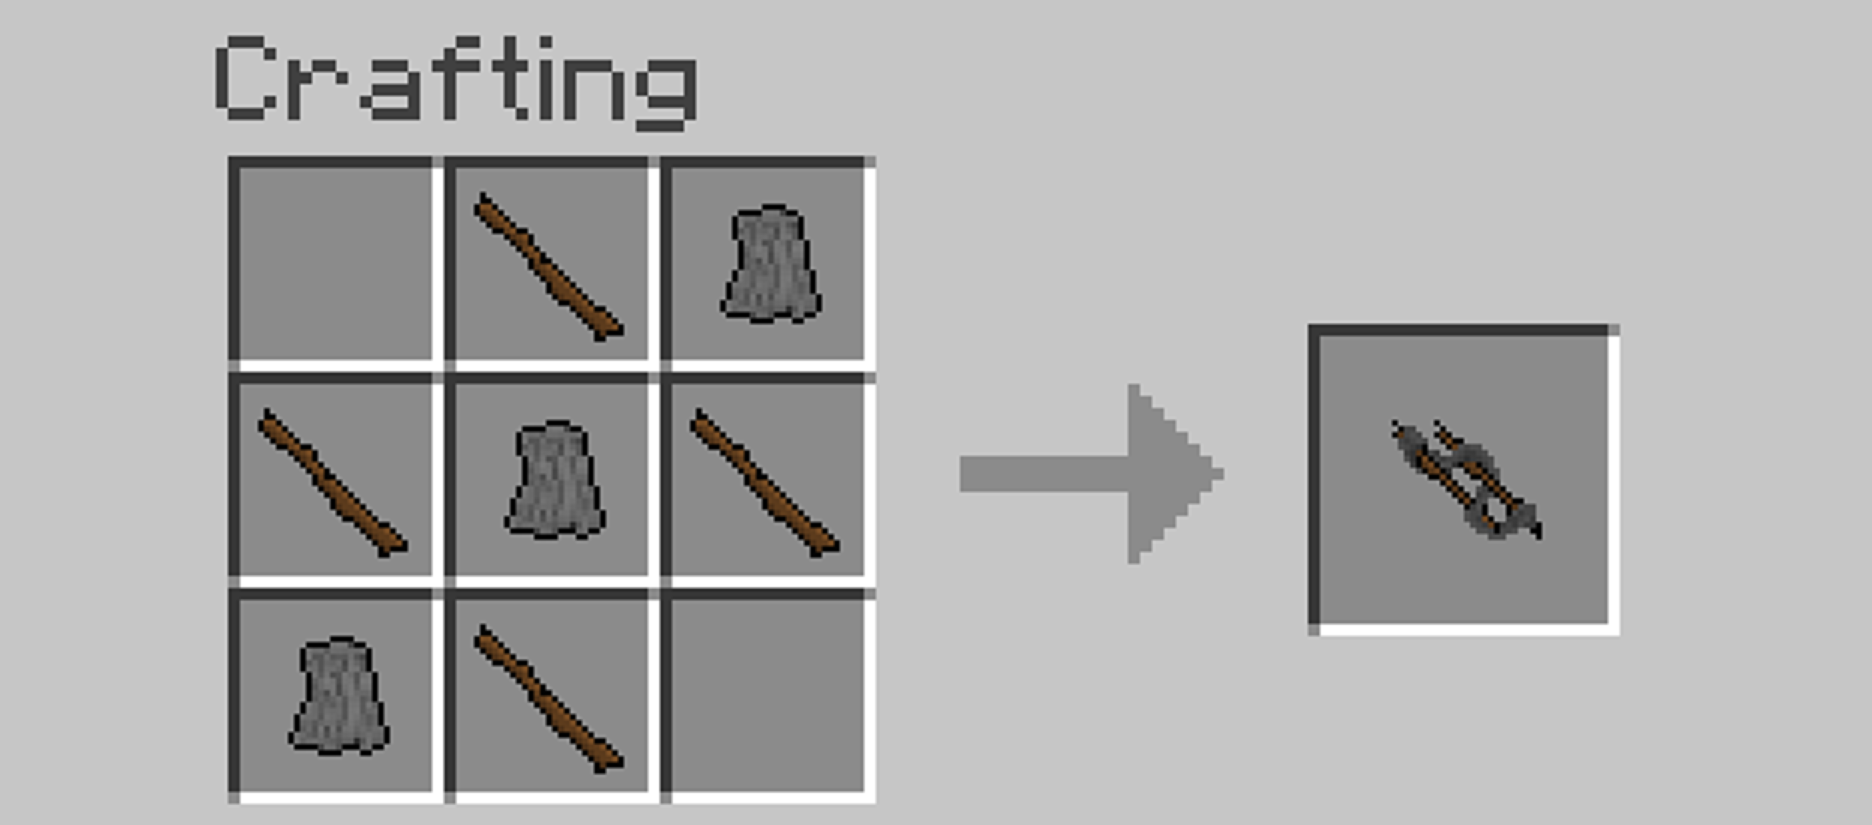 Crafting Dead How To Make Ammo